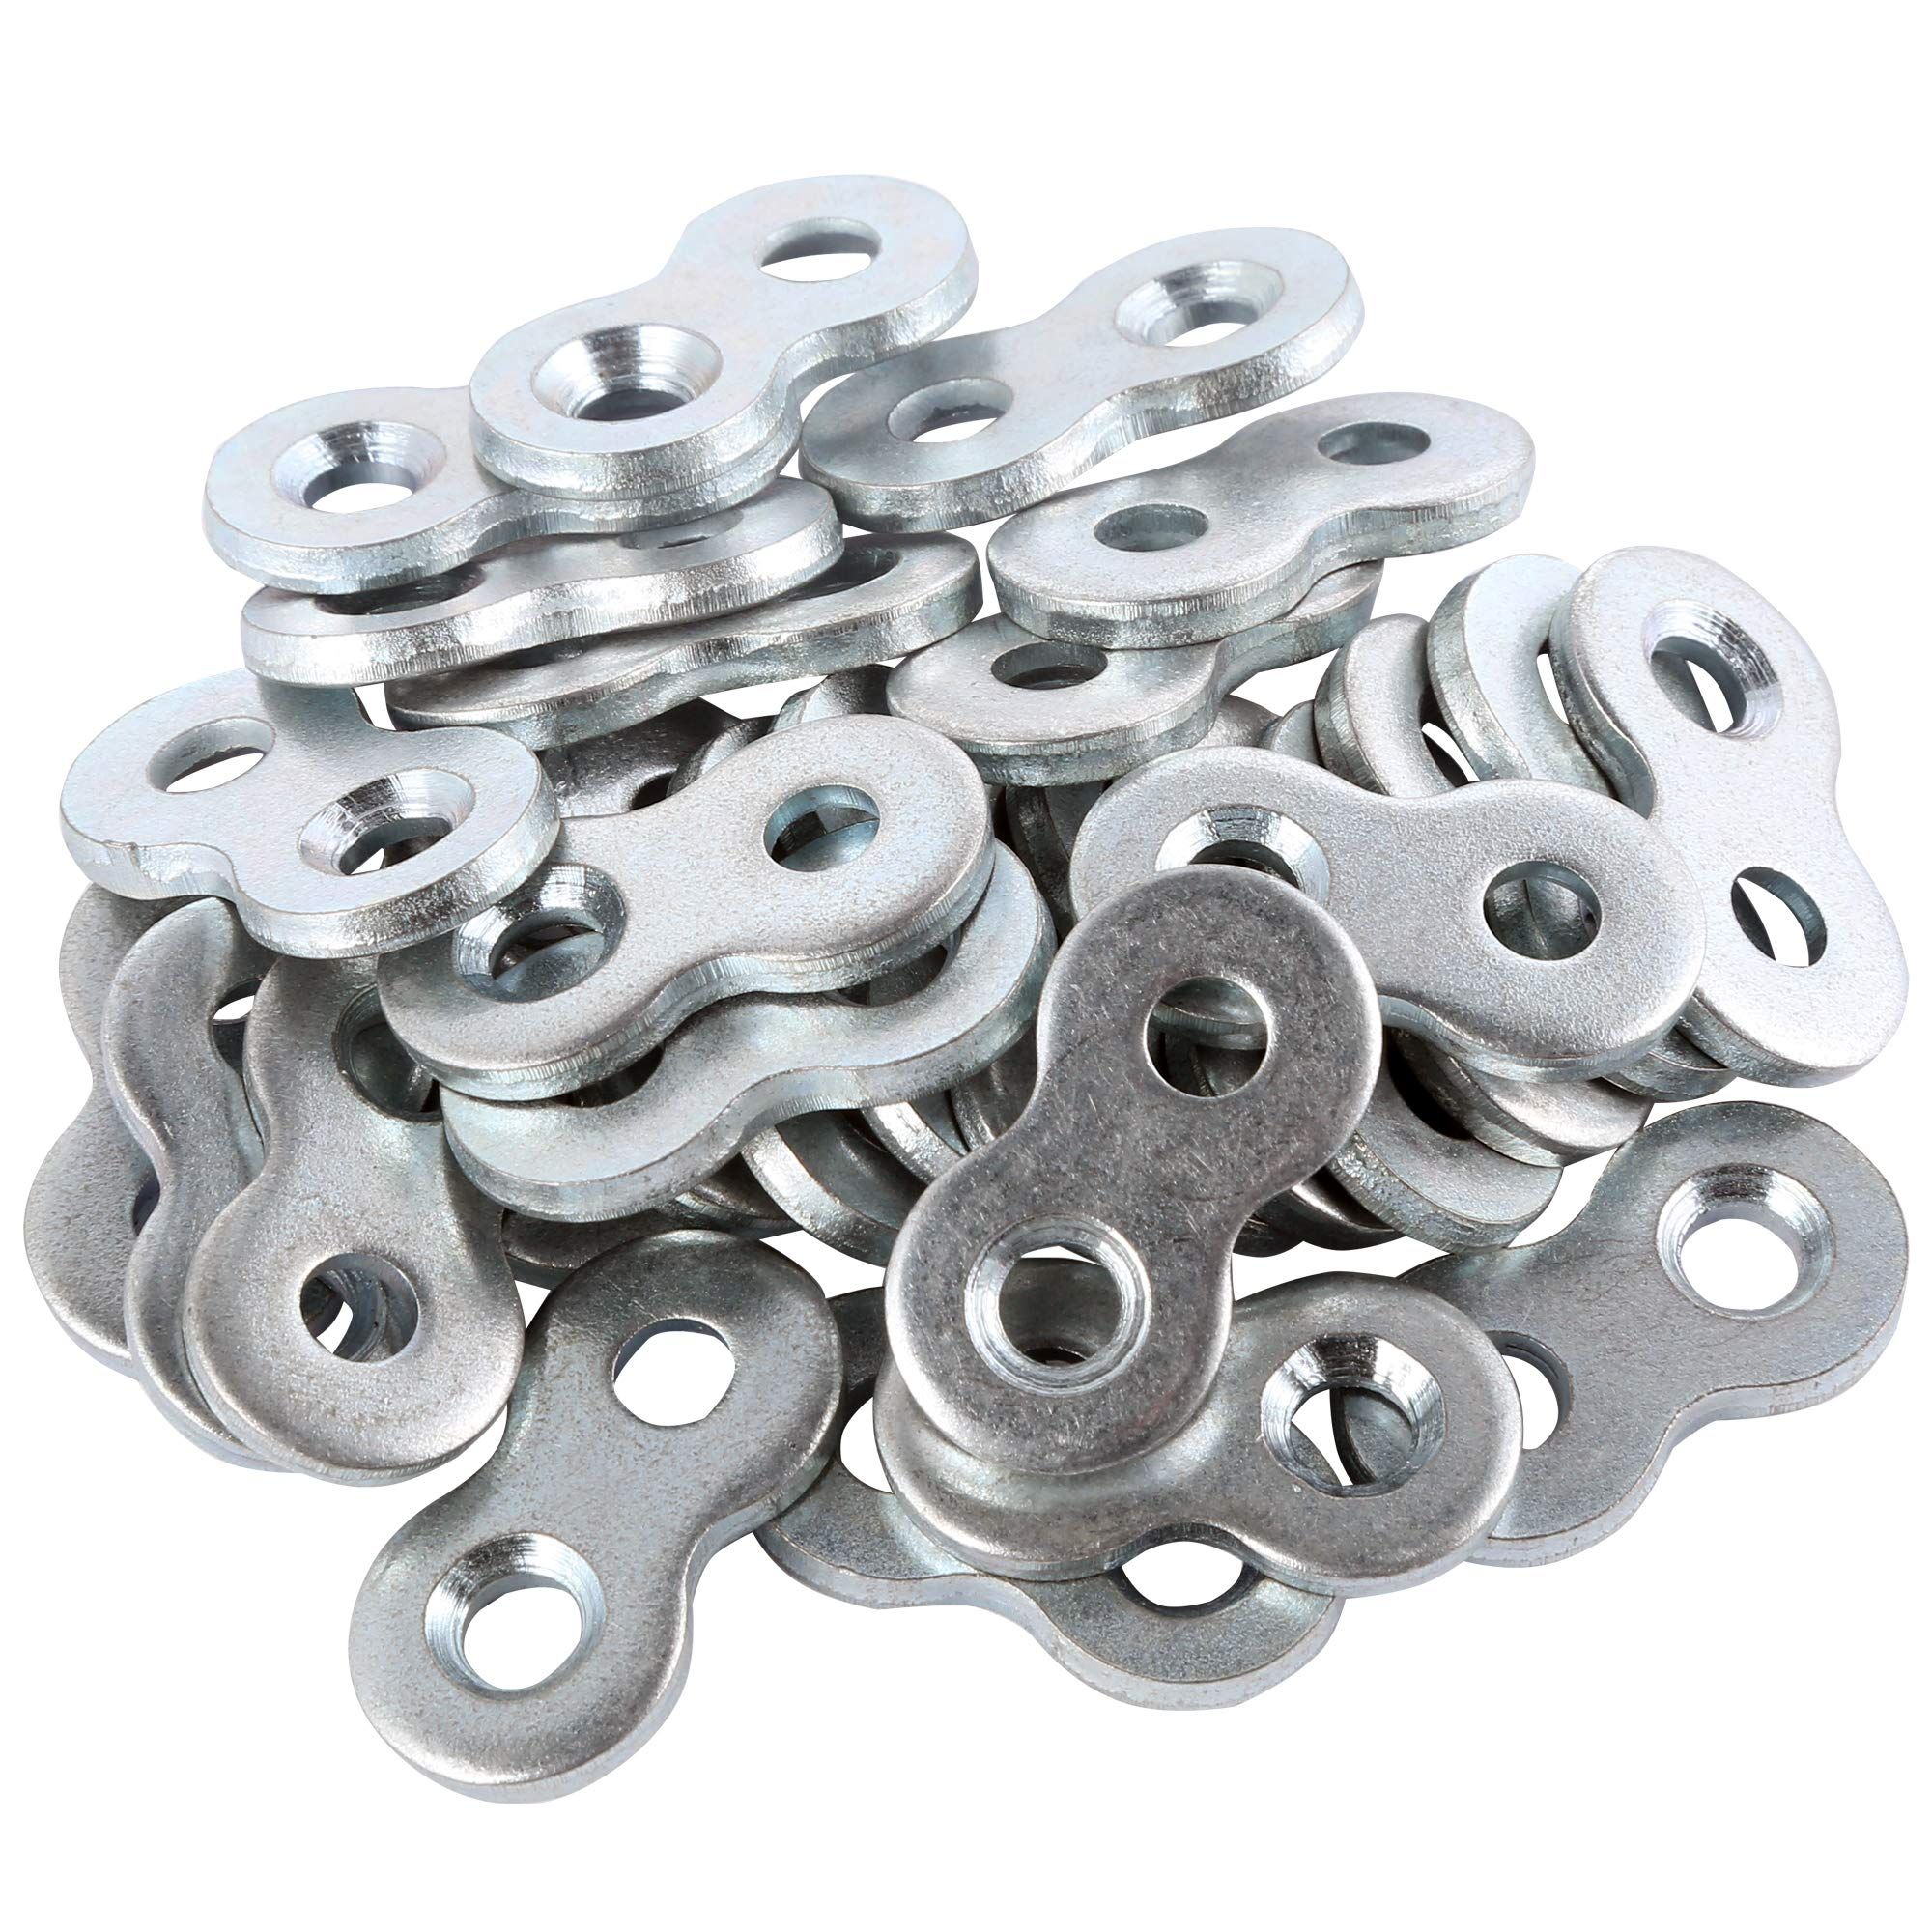 L Continue Figure 8 Fastener or Table Fasteners, Heavy Duty Steel and Galvanized Exterior. (30 Pack) by L Continue (Image #1)